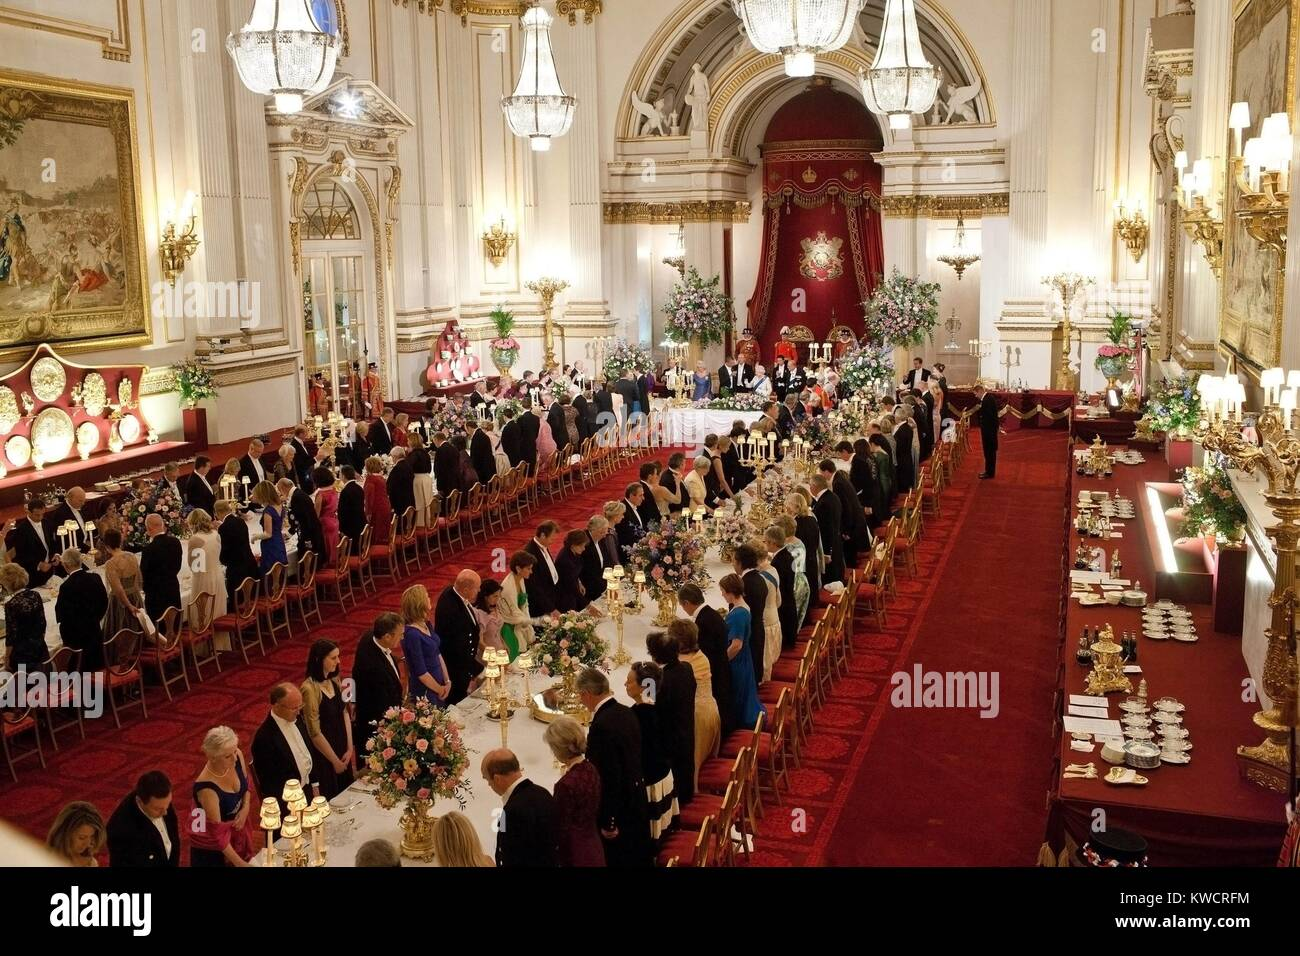 State Banquet for President Barack Obama hosted by Queen Elizabeth II at Buckingham Palace. London, England, May - Stock Image